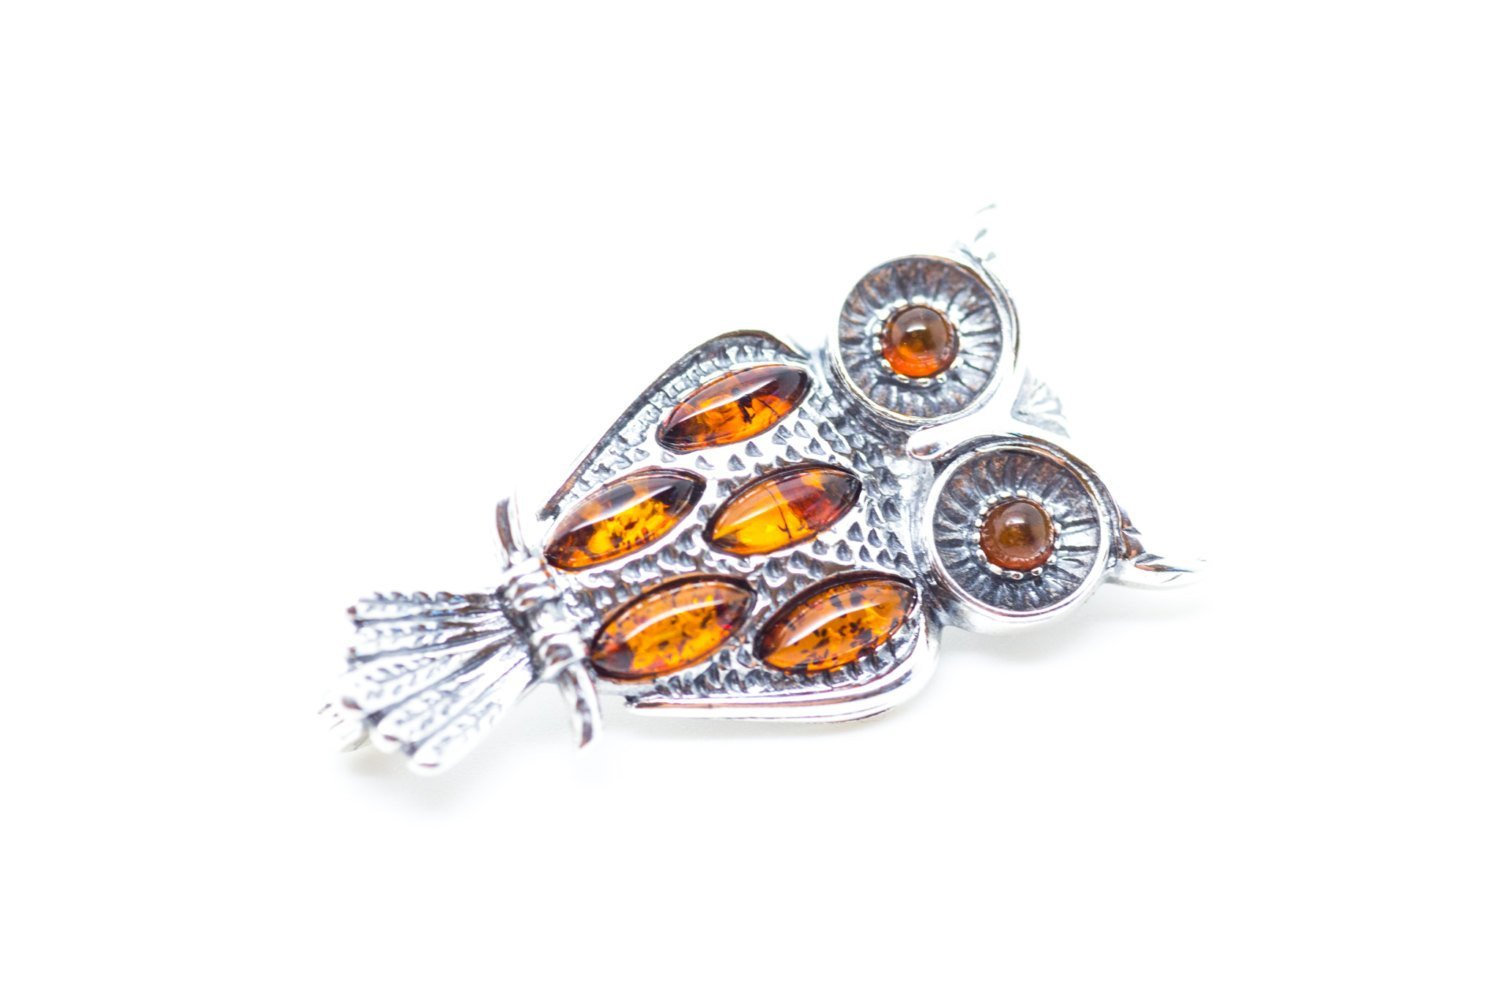 Baltic Beauty Brooches Silver & Amber Owl Brooch